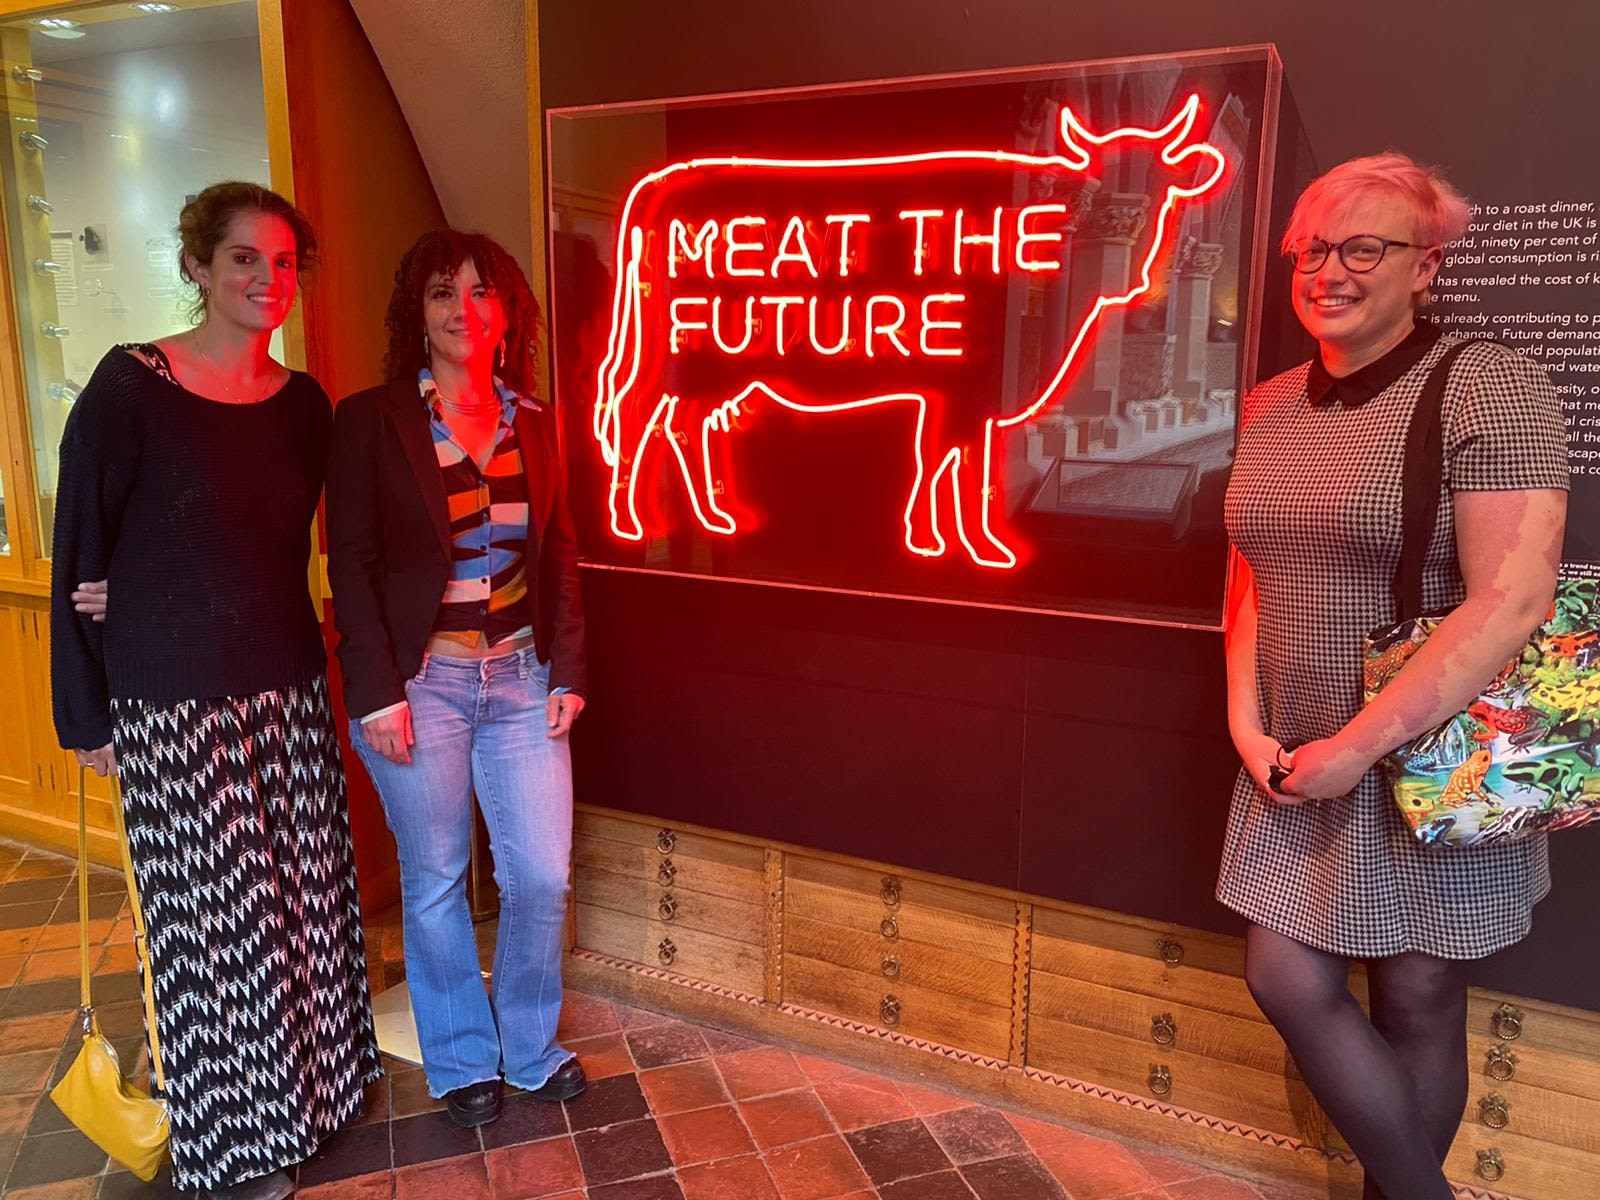 The histology team at the exhibit in the Oxford natural history museum. (From left to right) Dr Bryony Stott, Dr Ida Parisi and Rhiannon Cook.